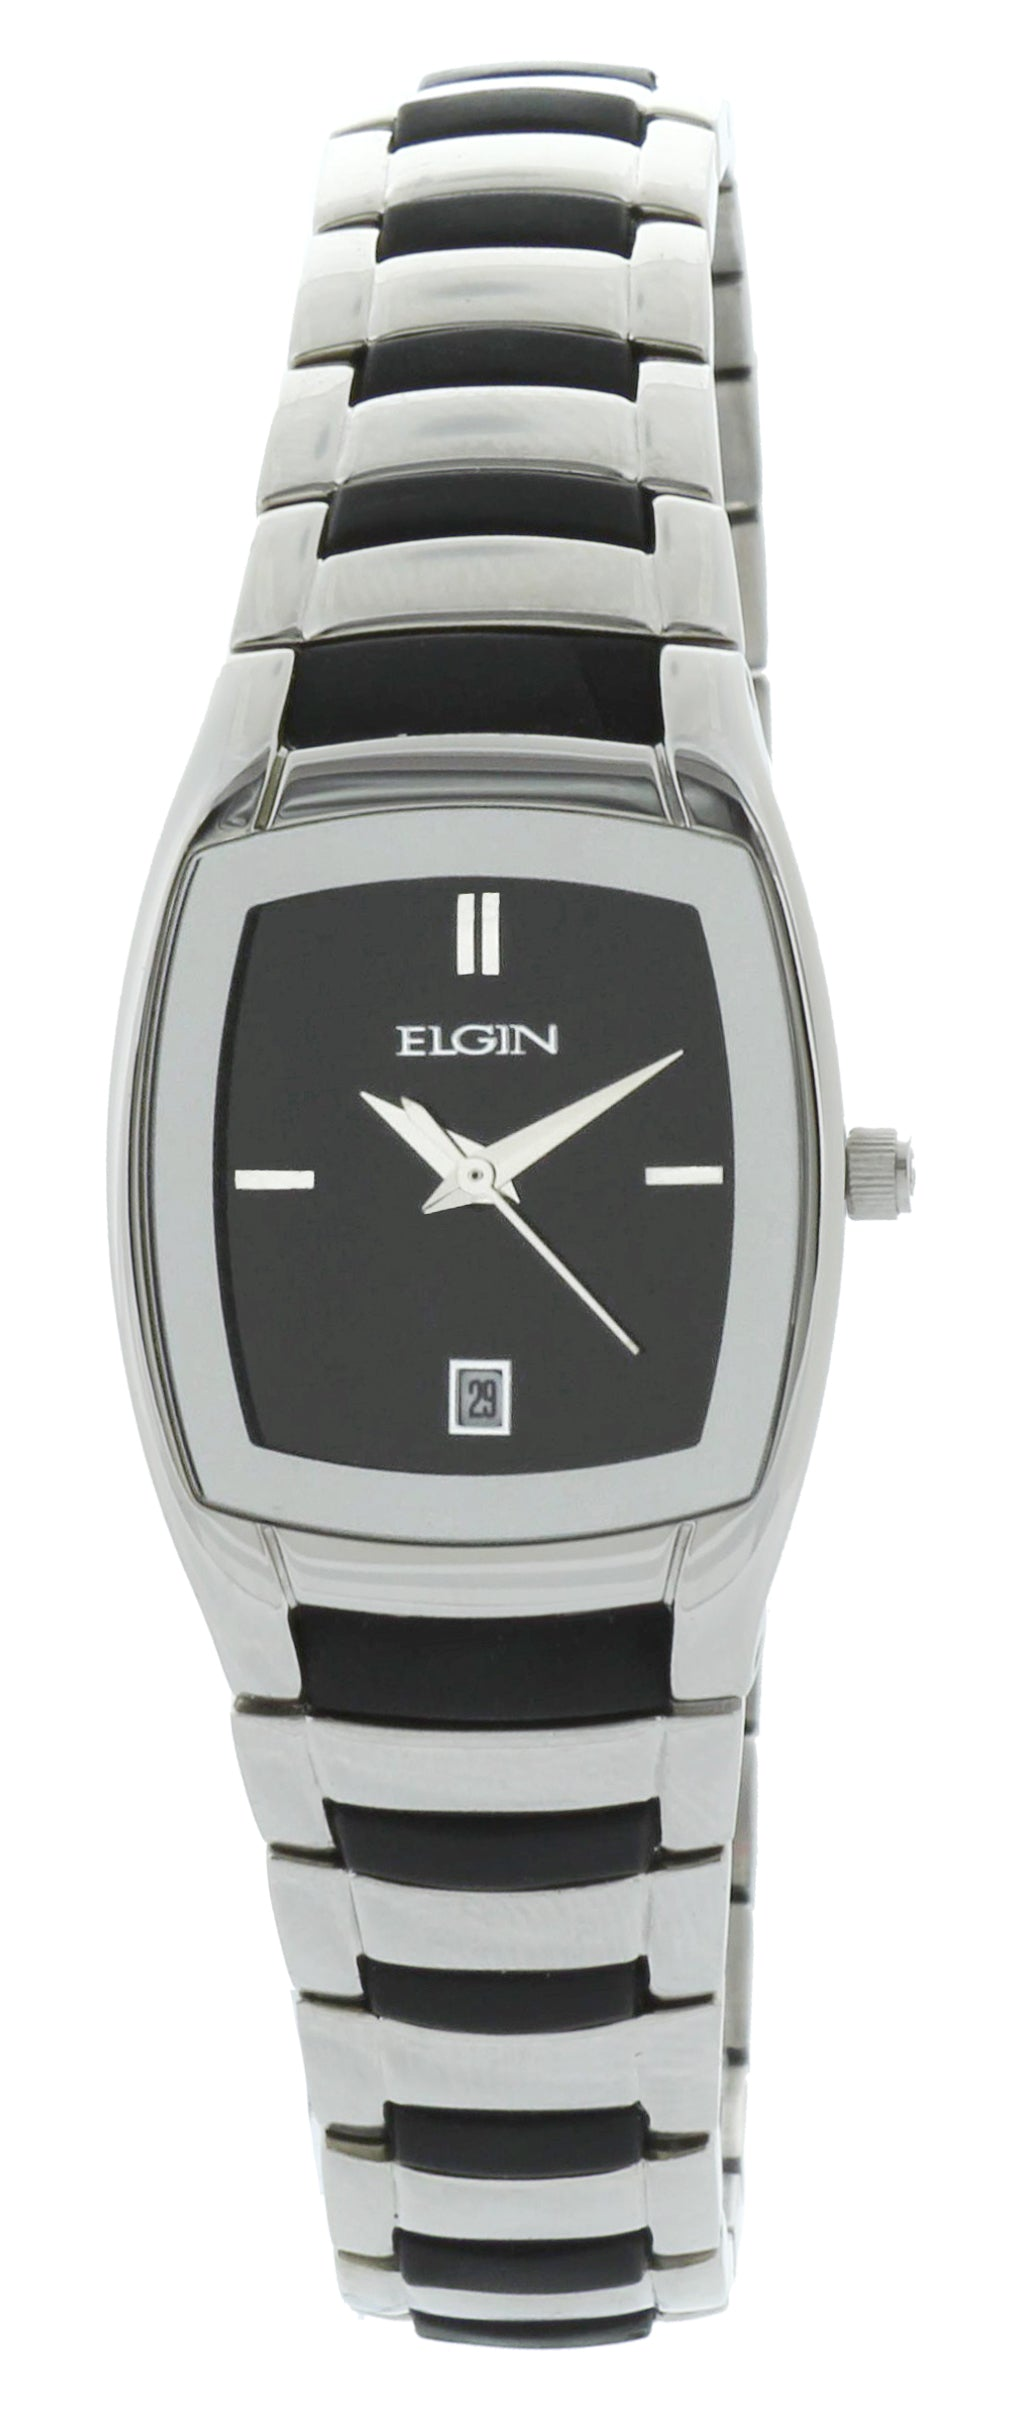 Elgin Women's Silver-Tone Black Sunray Dial Rubber Integrated Bracelet Watch - EG453